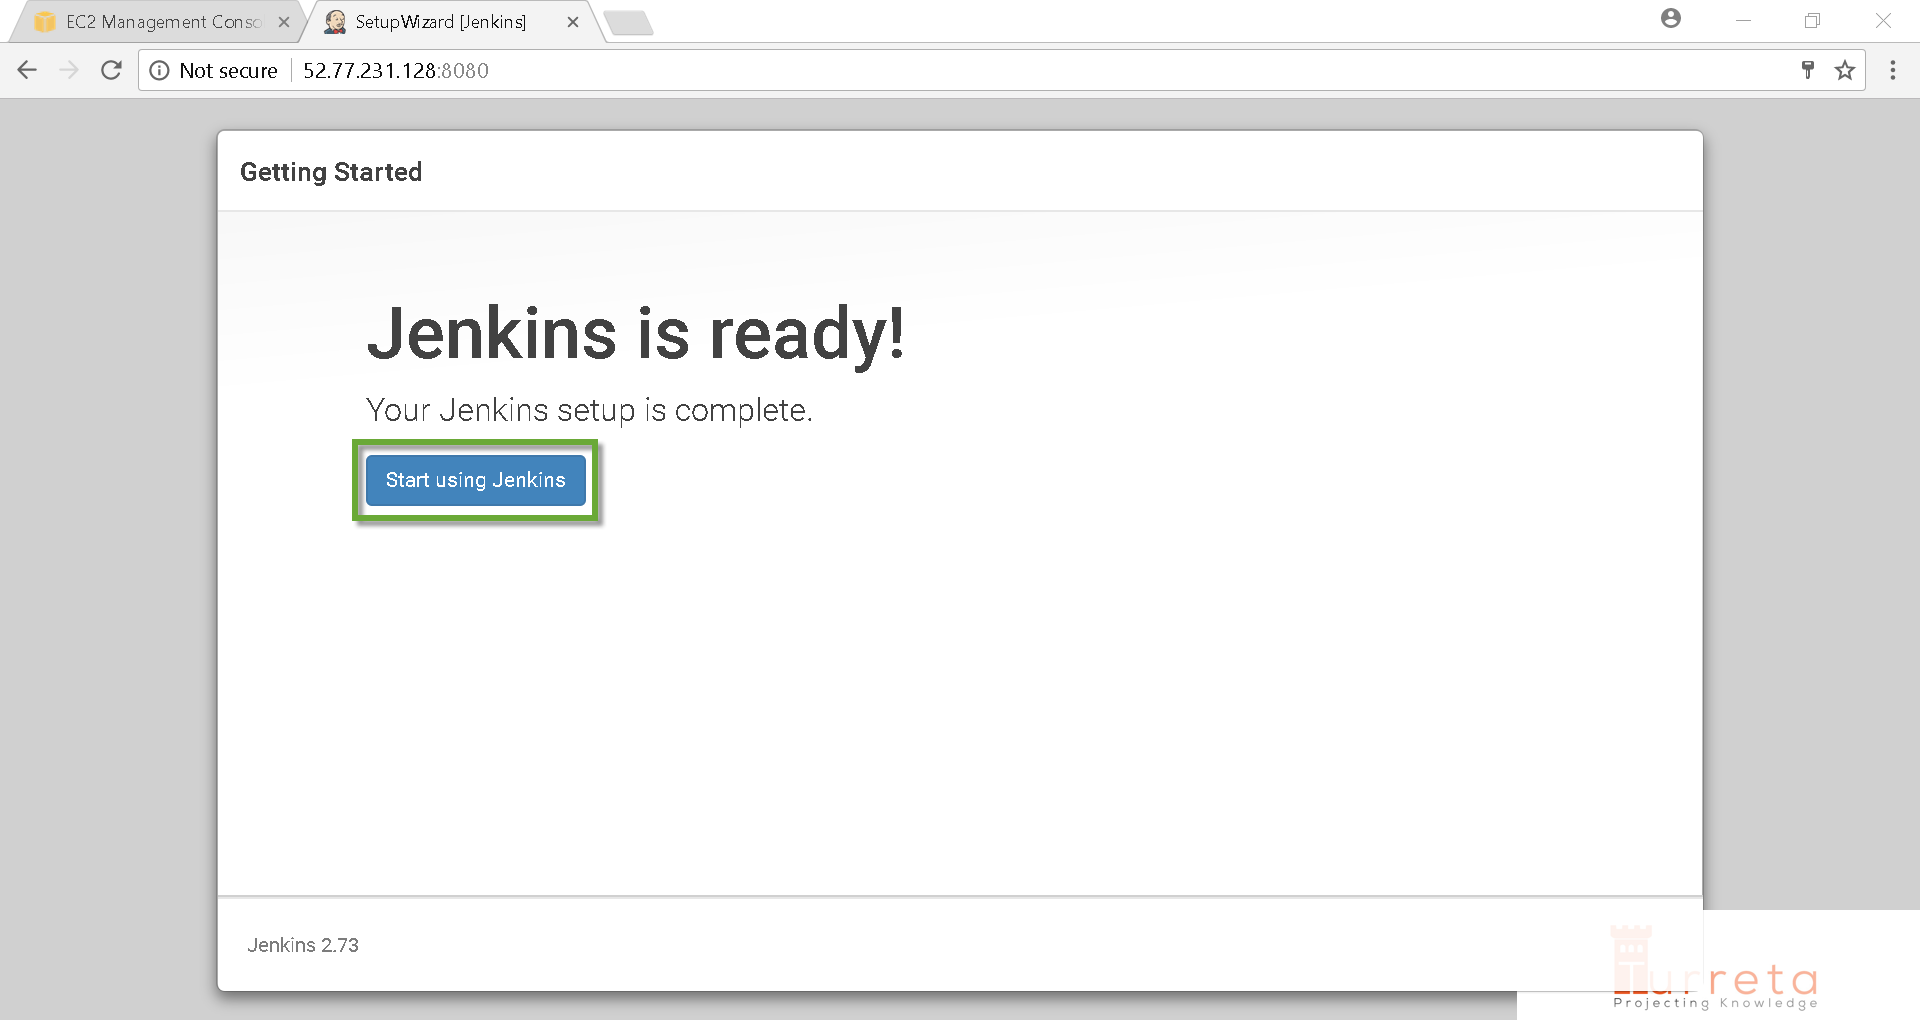 Jenkins is now ready